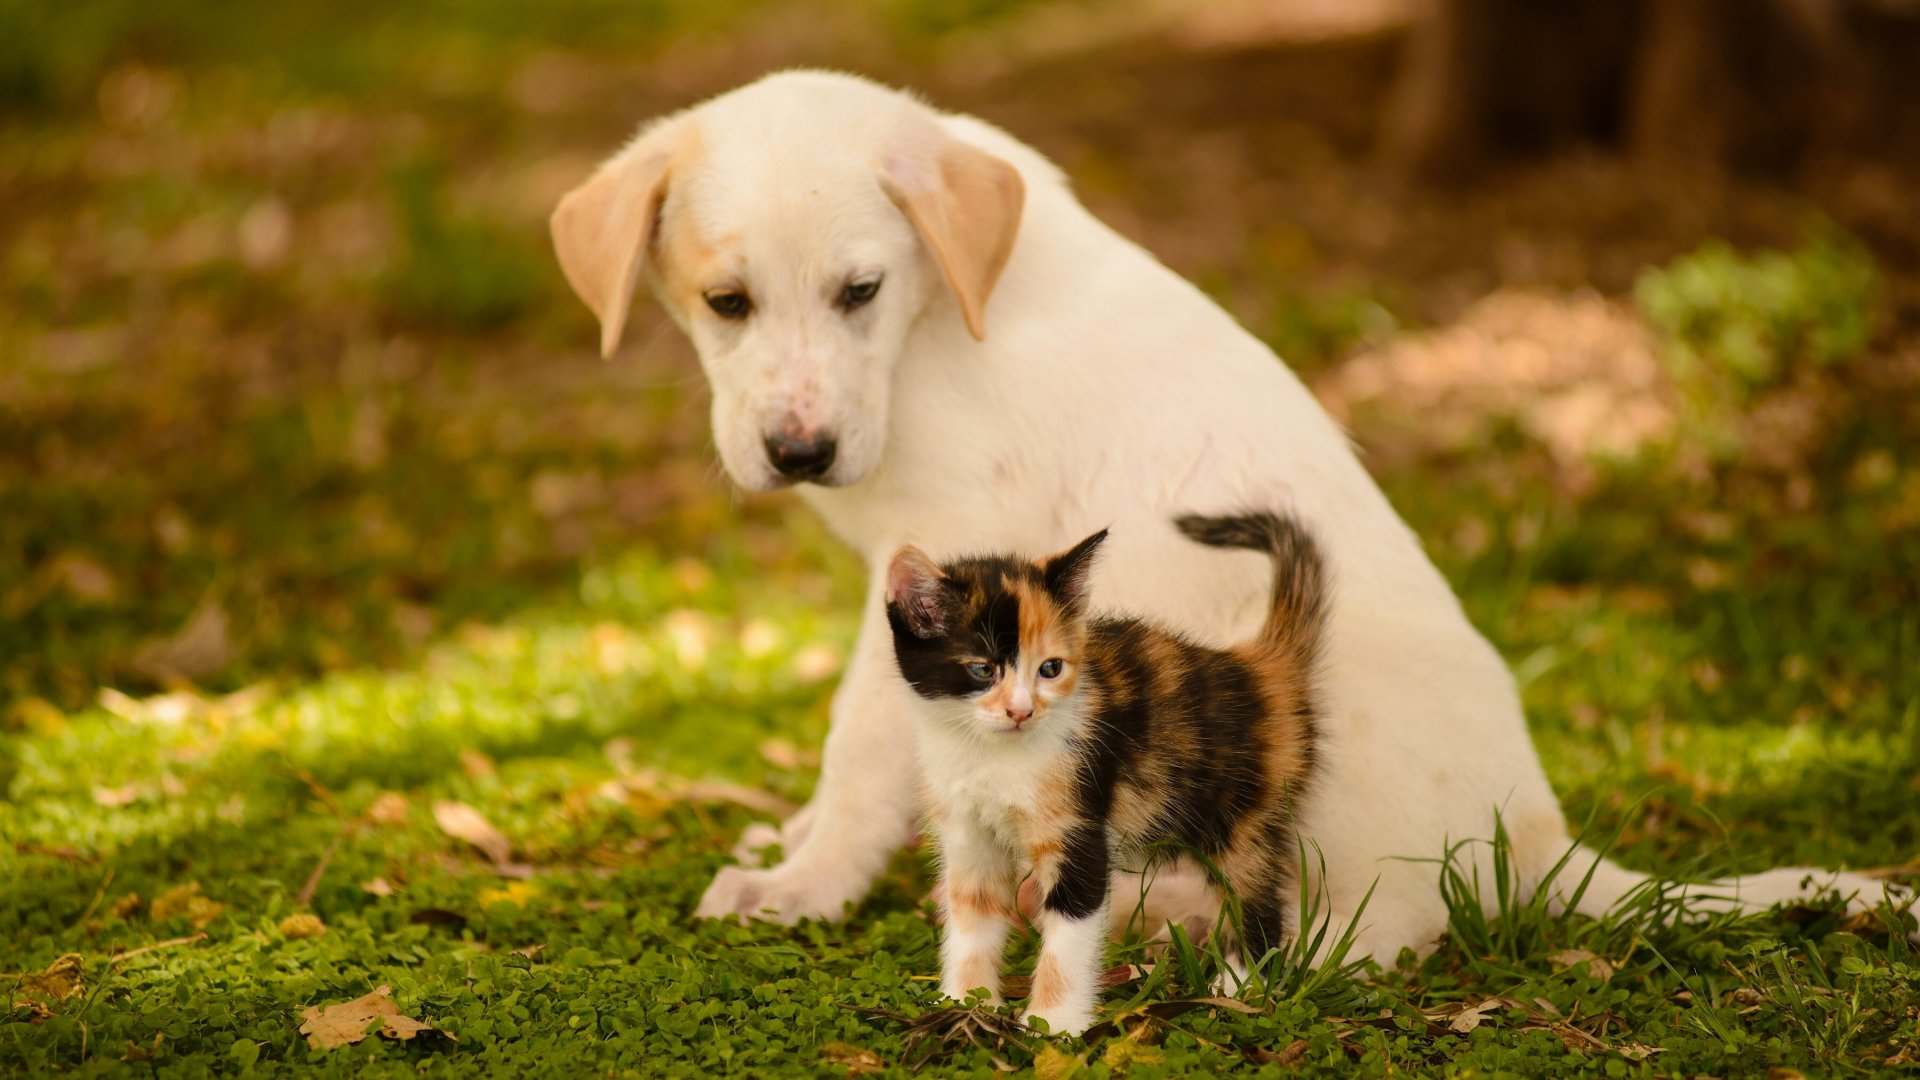 Kitten And Puppy Wallpapers Mobile Is Cool Wallpapers